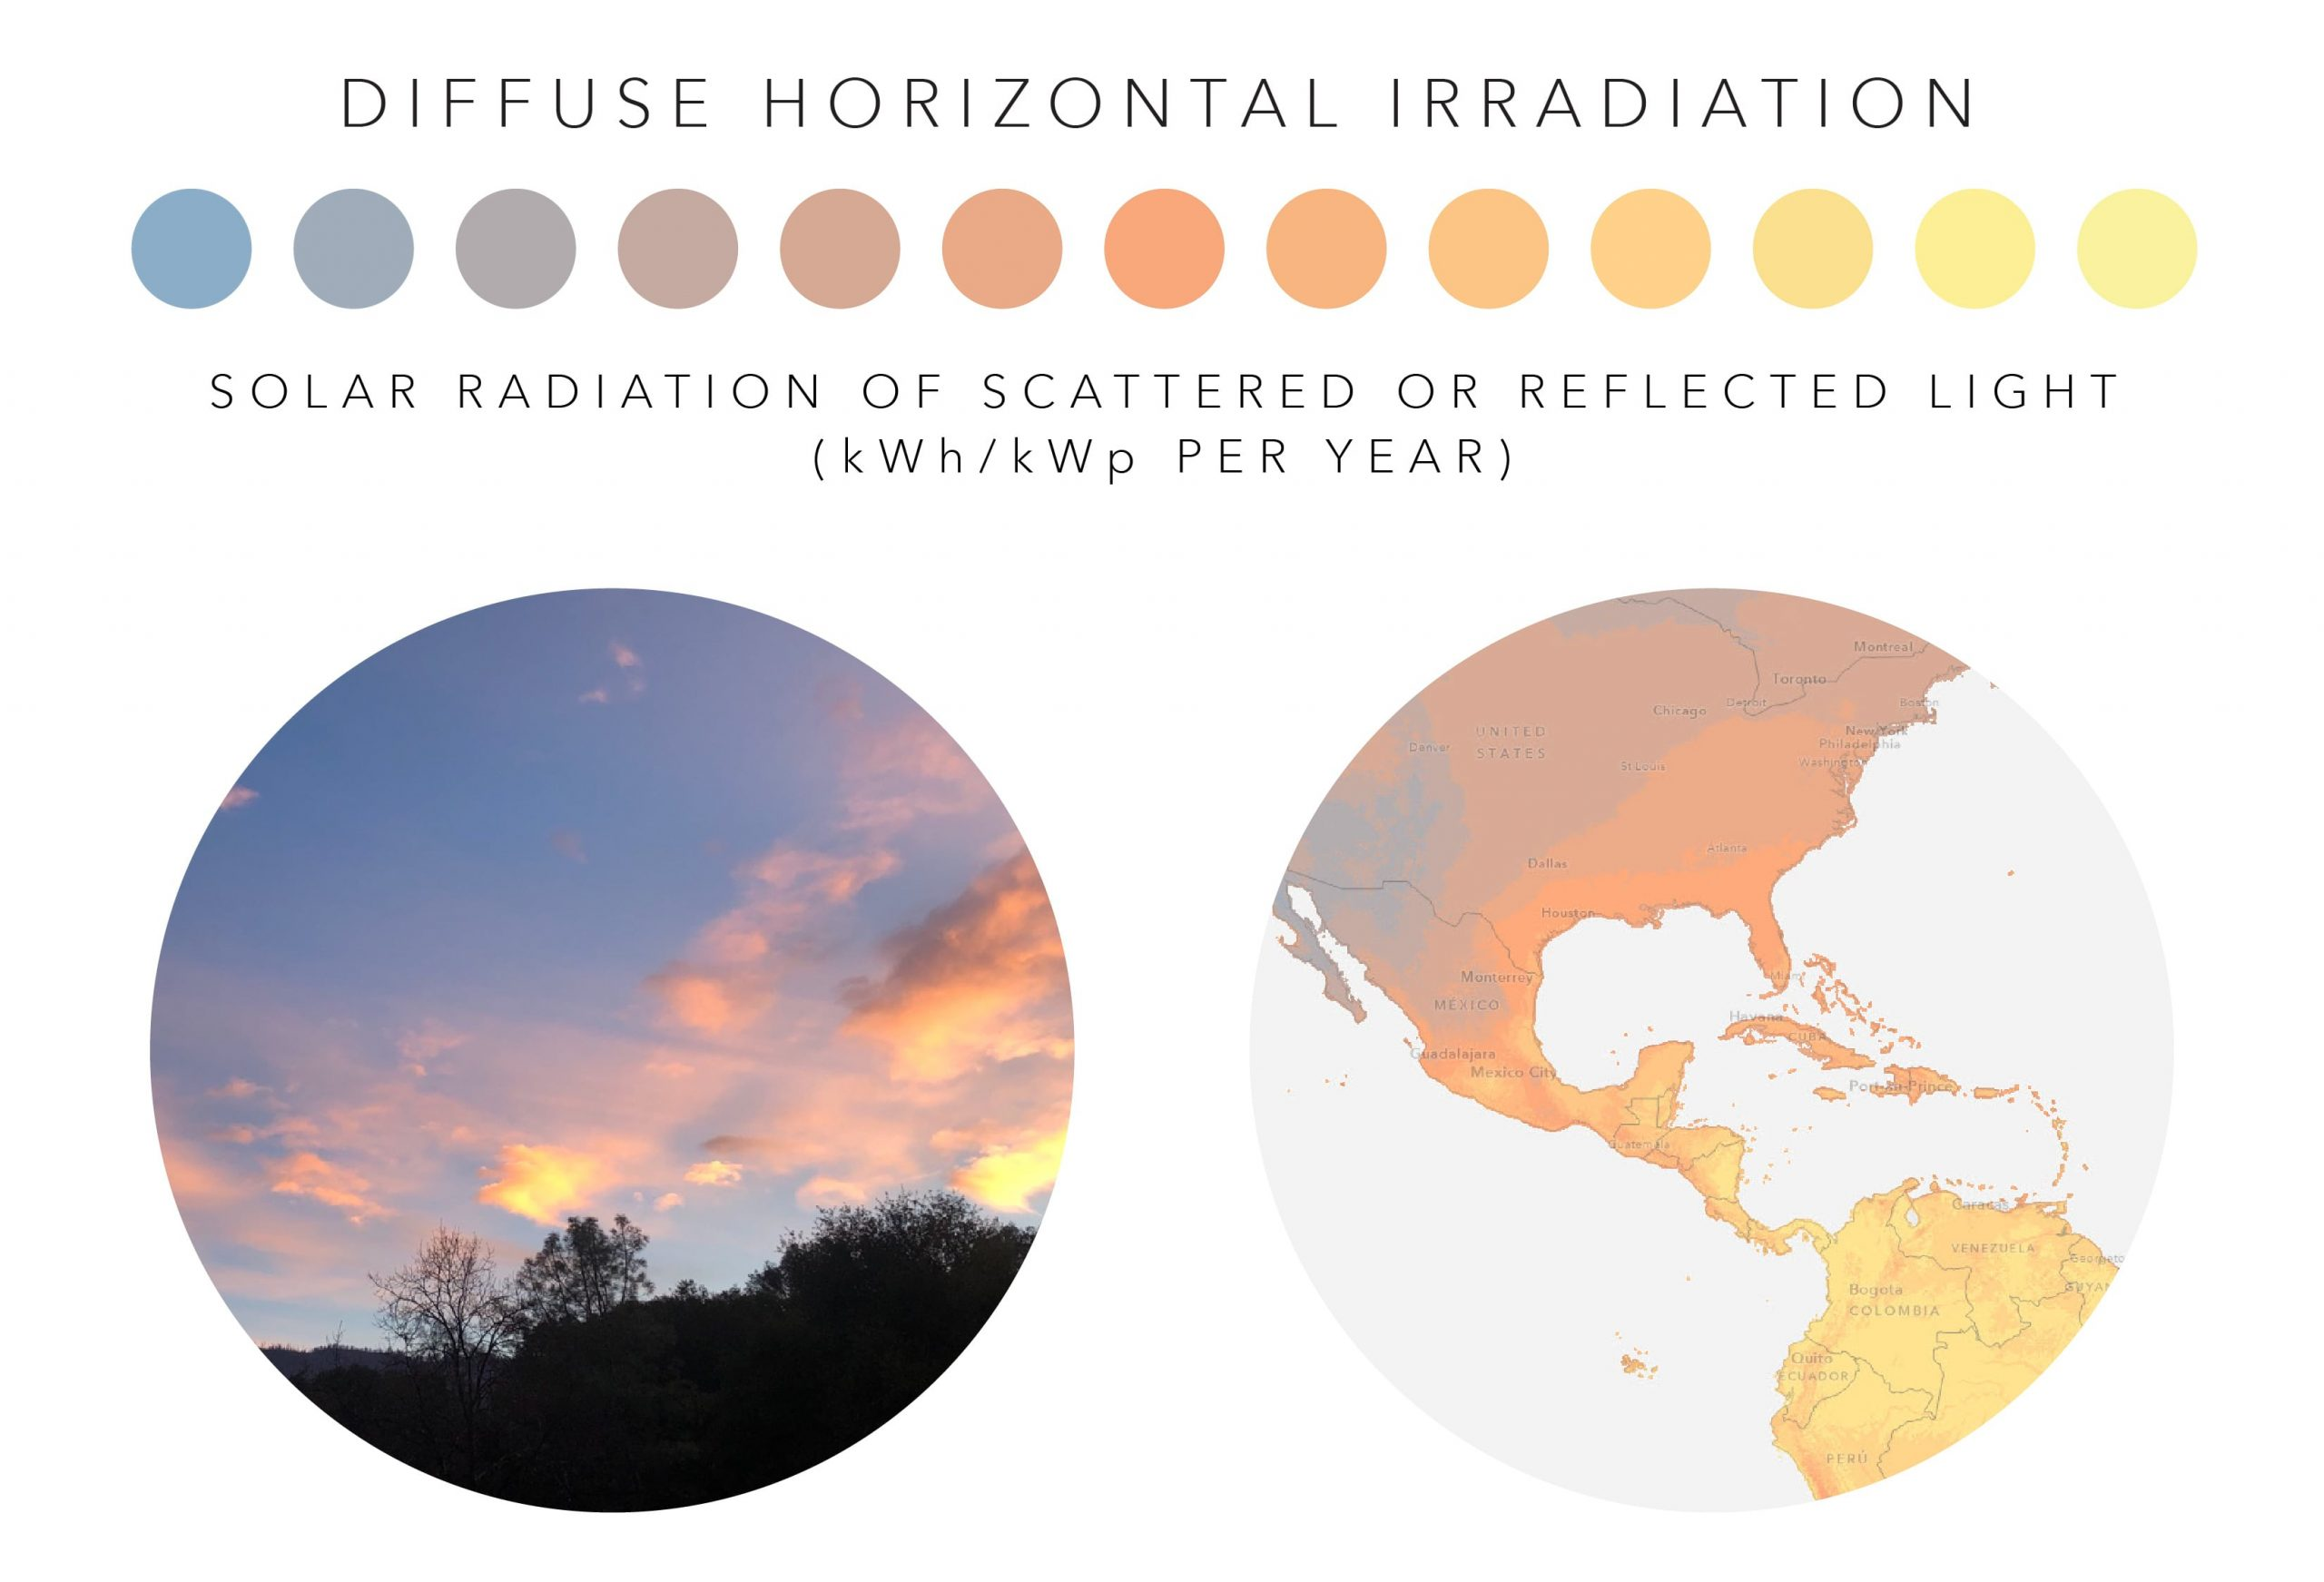 A picture of a sunset and the palette for the Diffuse Horizontal Irradiation variable.